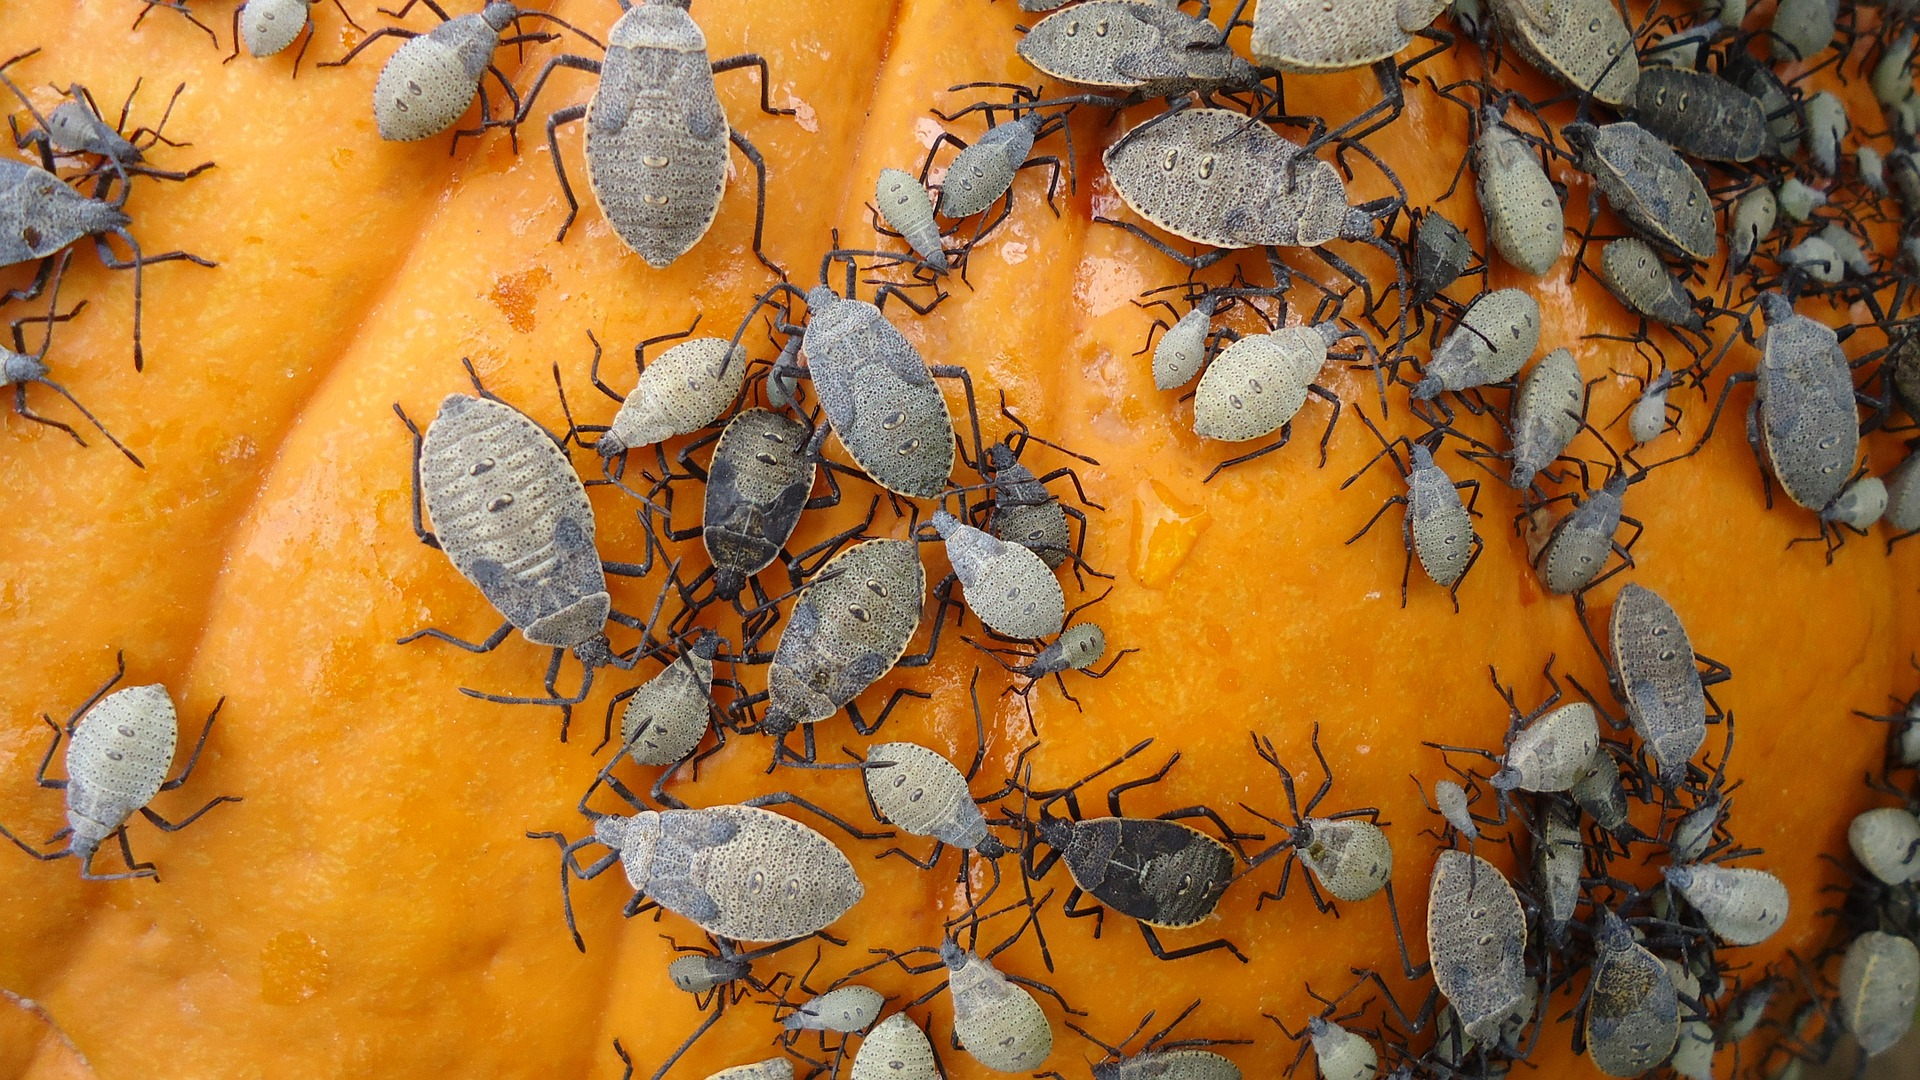 Fall bugs, Ants, pests to look for in the fall